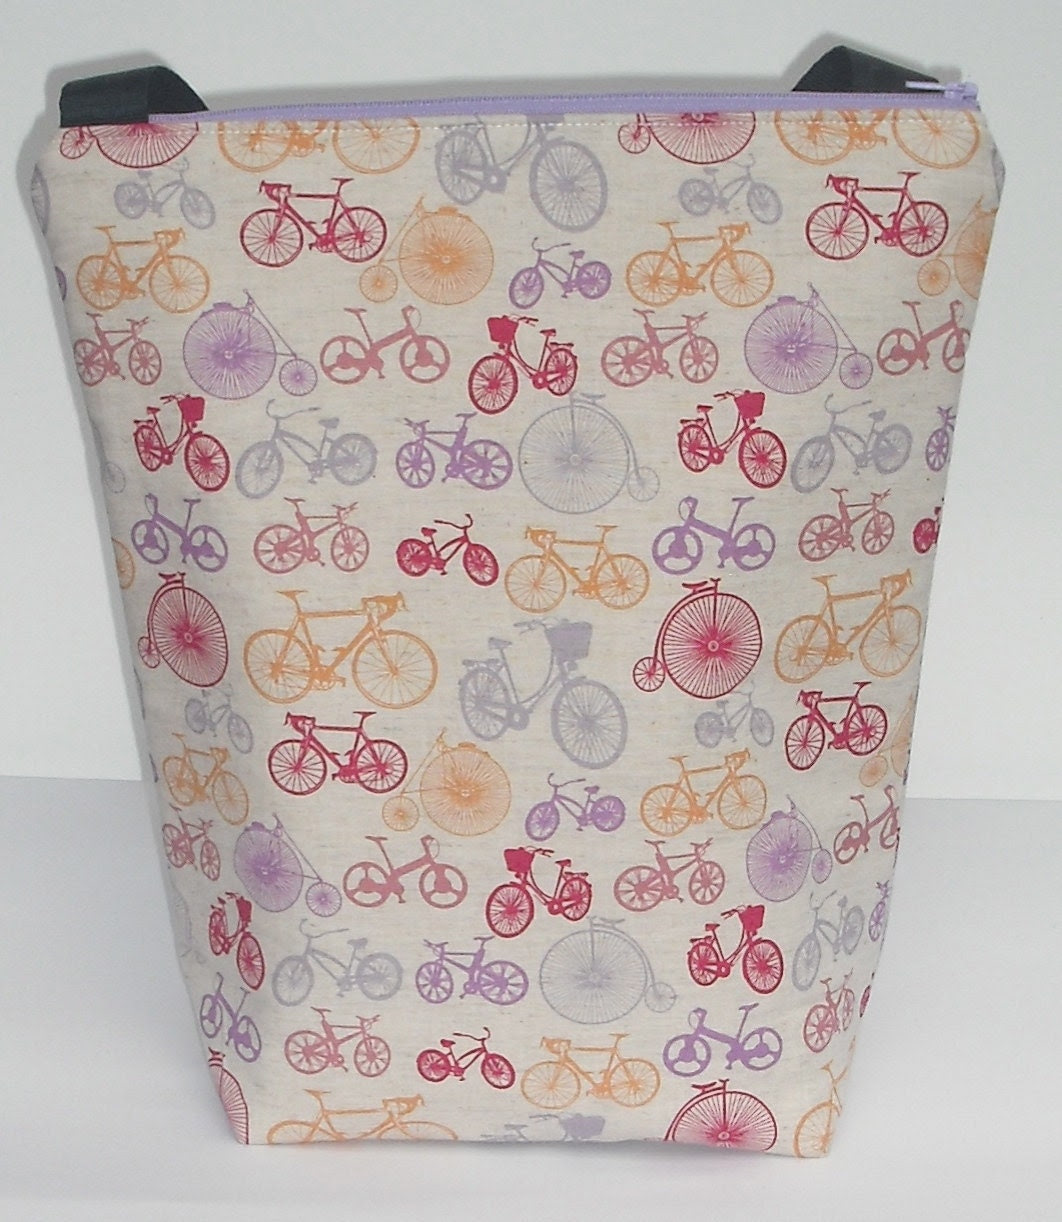 Insulated  Lunch Bag Tote - Zip Eco Friendly Summer Bike Rides BonTonsGifts on Etsy